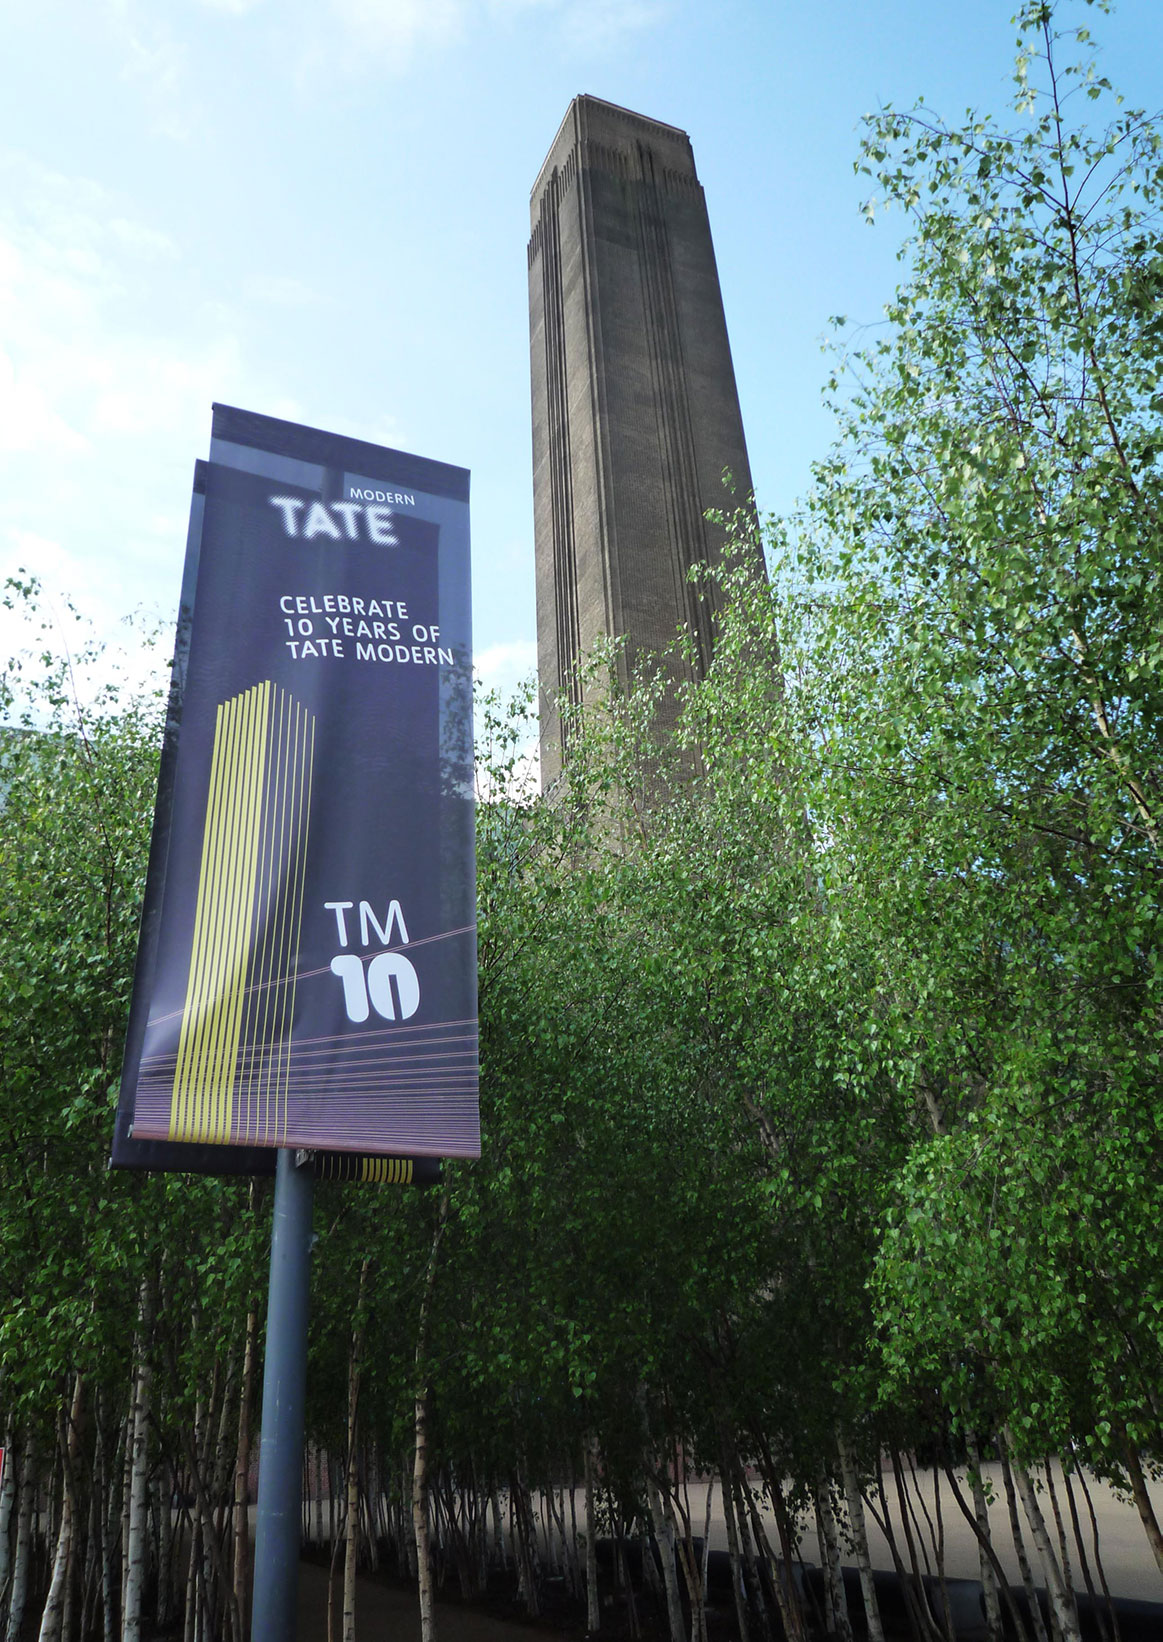 Tate Modern - TM10 Festival - identity and design